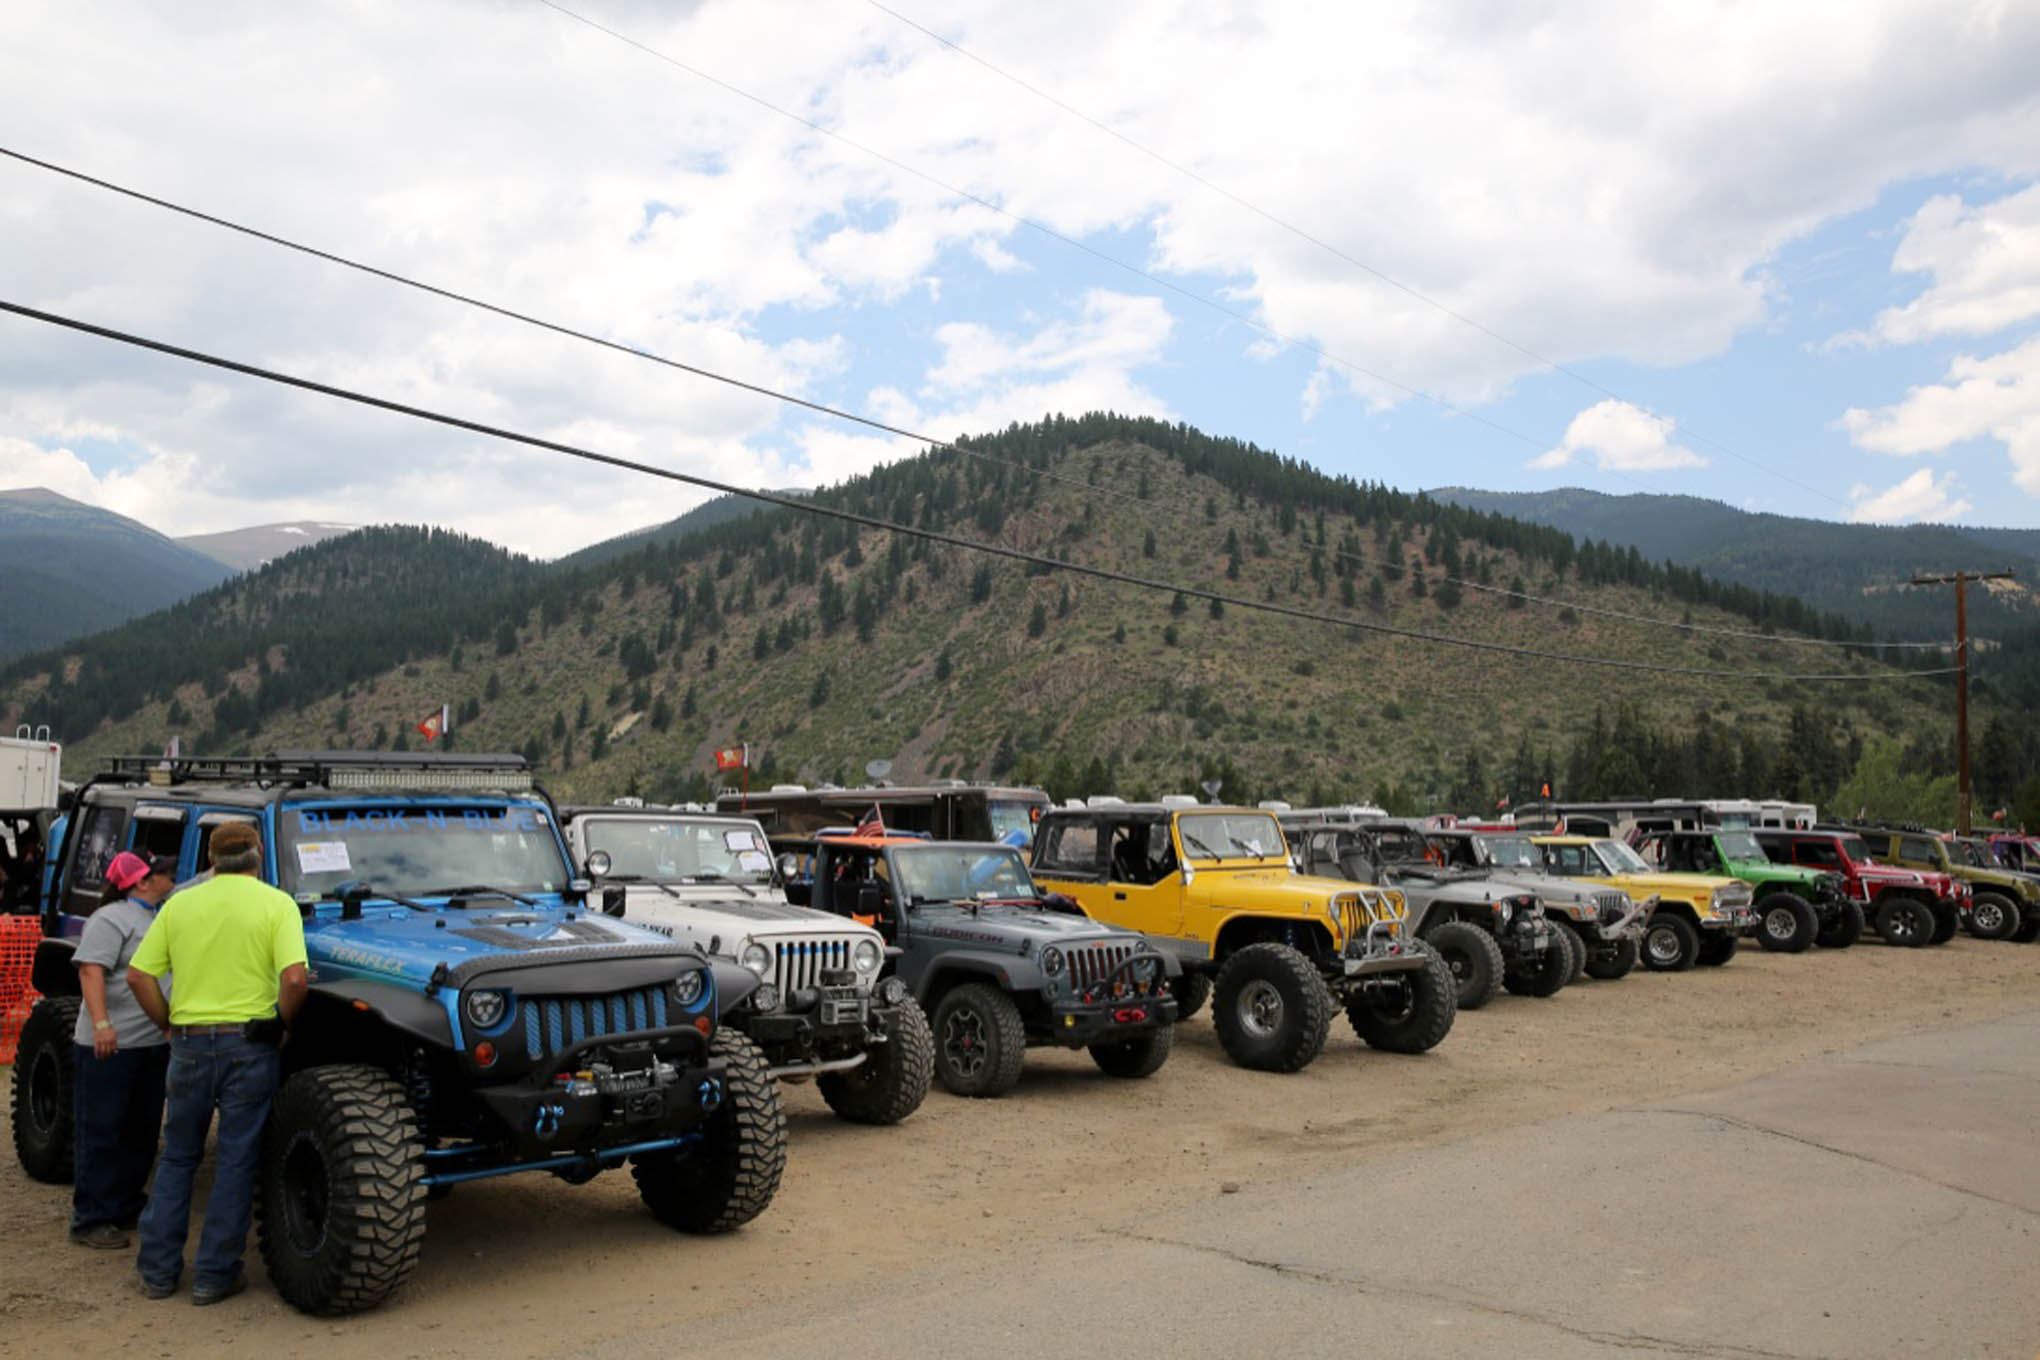 Participants are lined up to show off their rigs at the show 'n' shine.